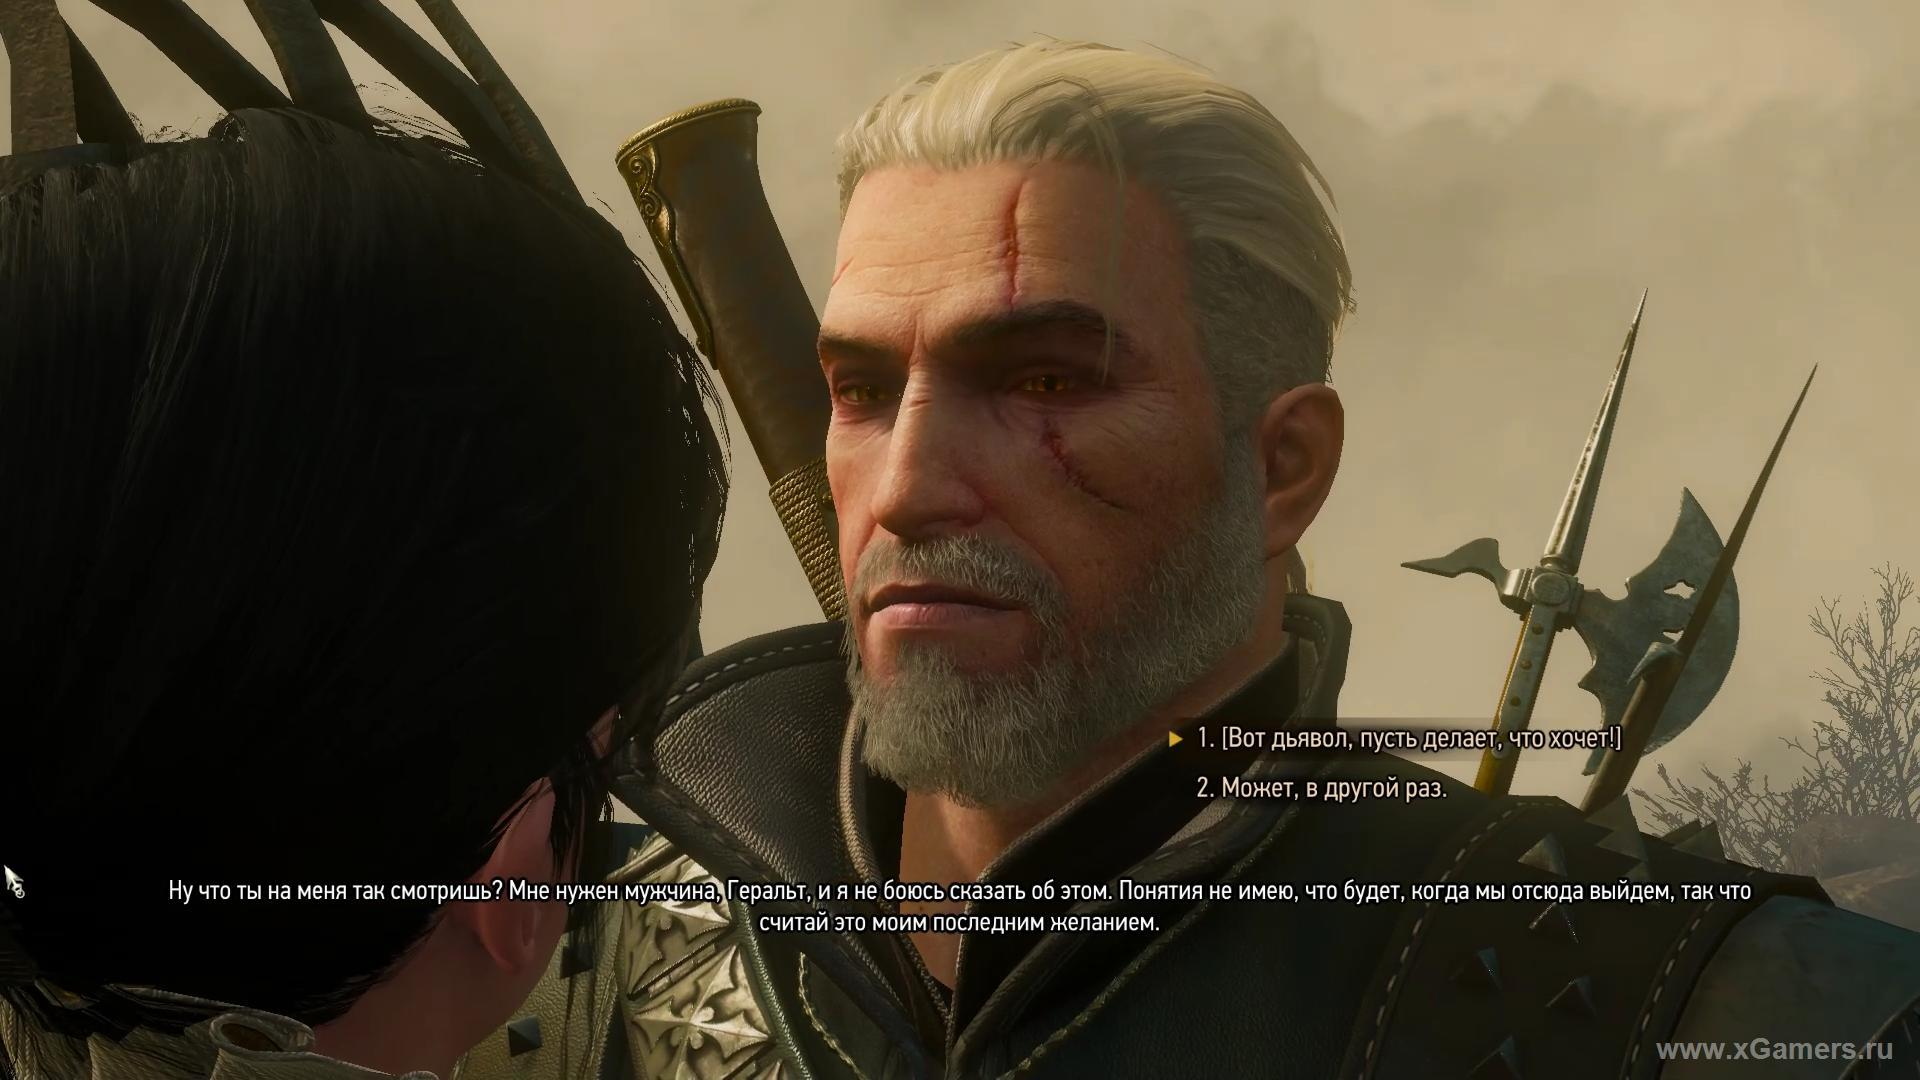 Witcher 3 a long time ago ending